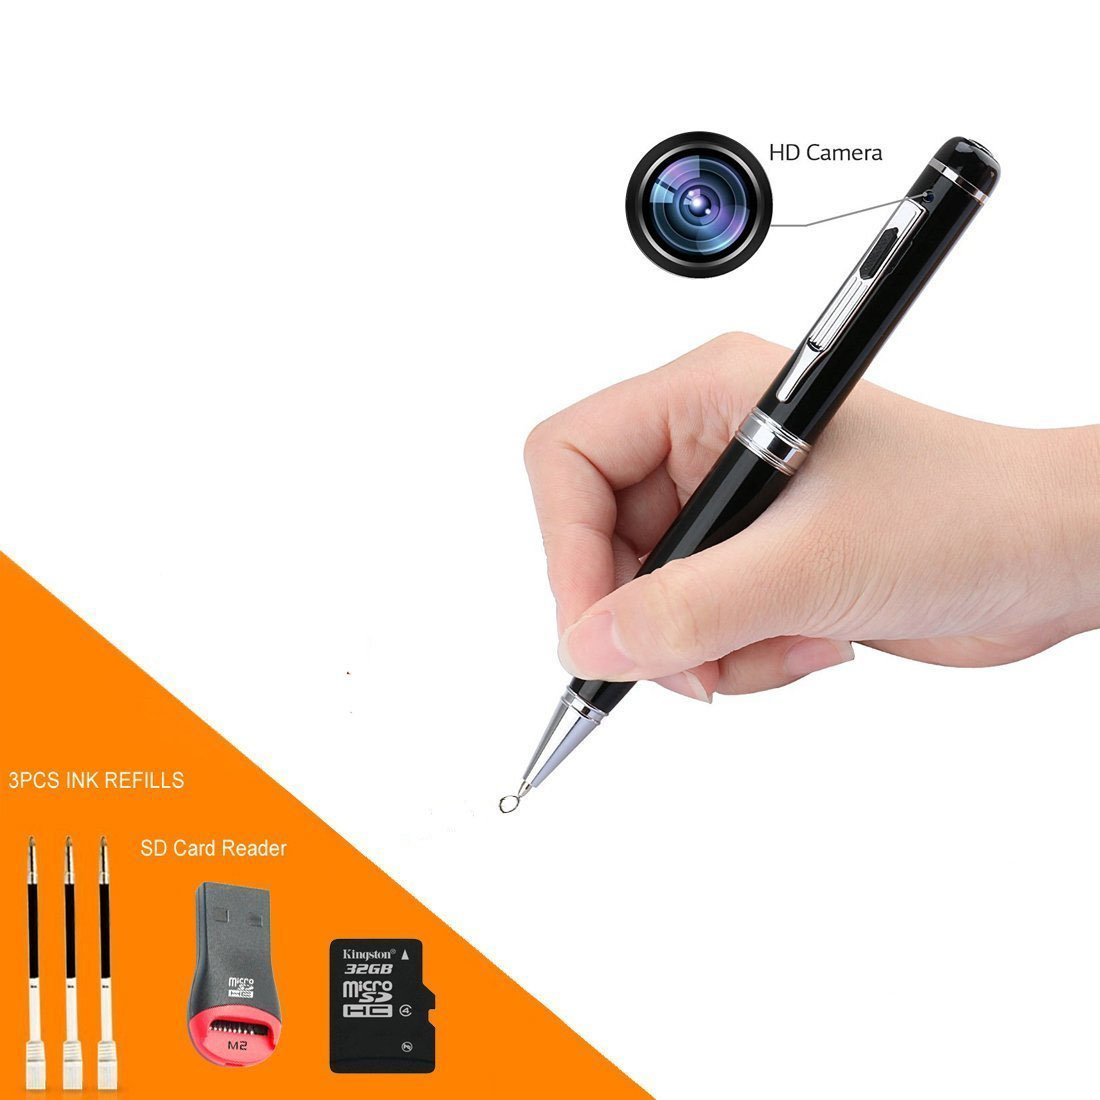 Cámara de lápiz, Spy Pen con cámara Oculta Vigilancia 1080P Full HD Hidden Pen Recorder Plug and Play para PC (32GB): Amazon.es: Bricolaje y herramientas